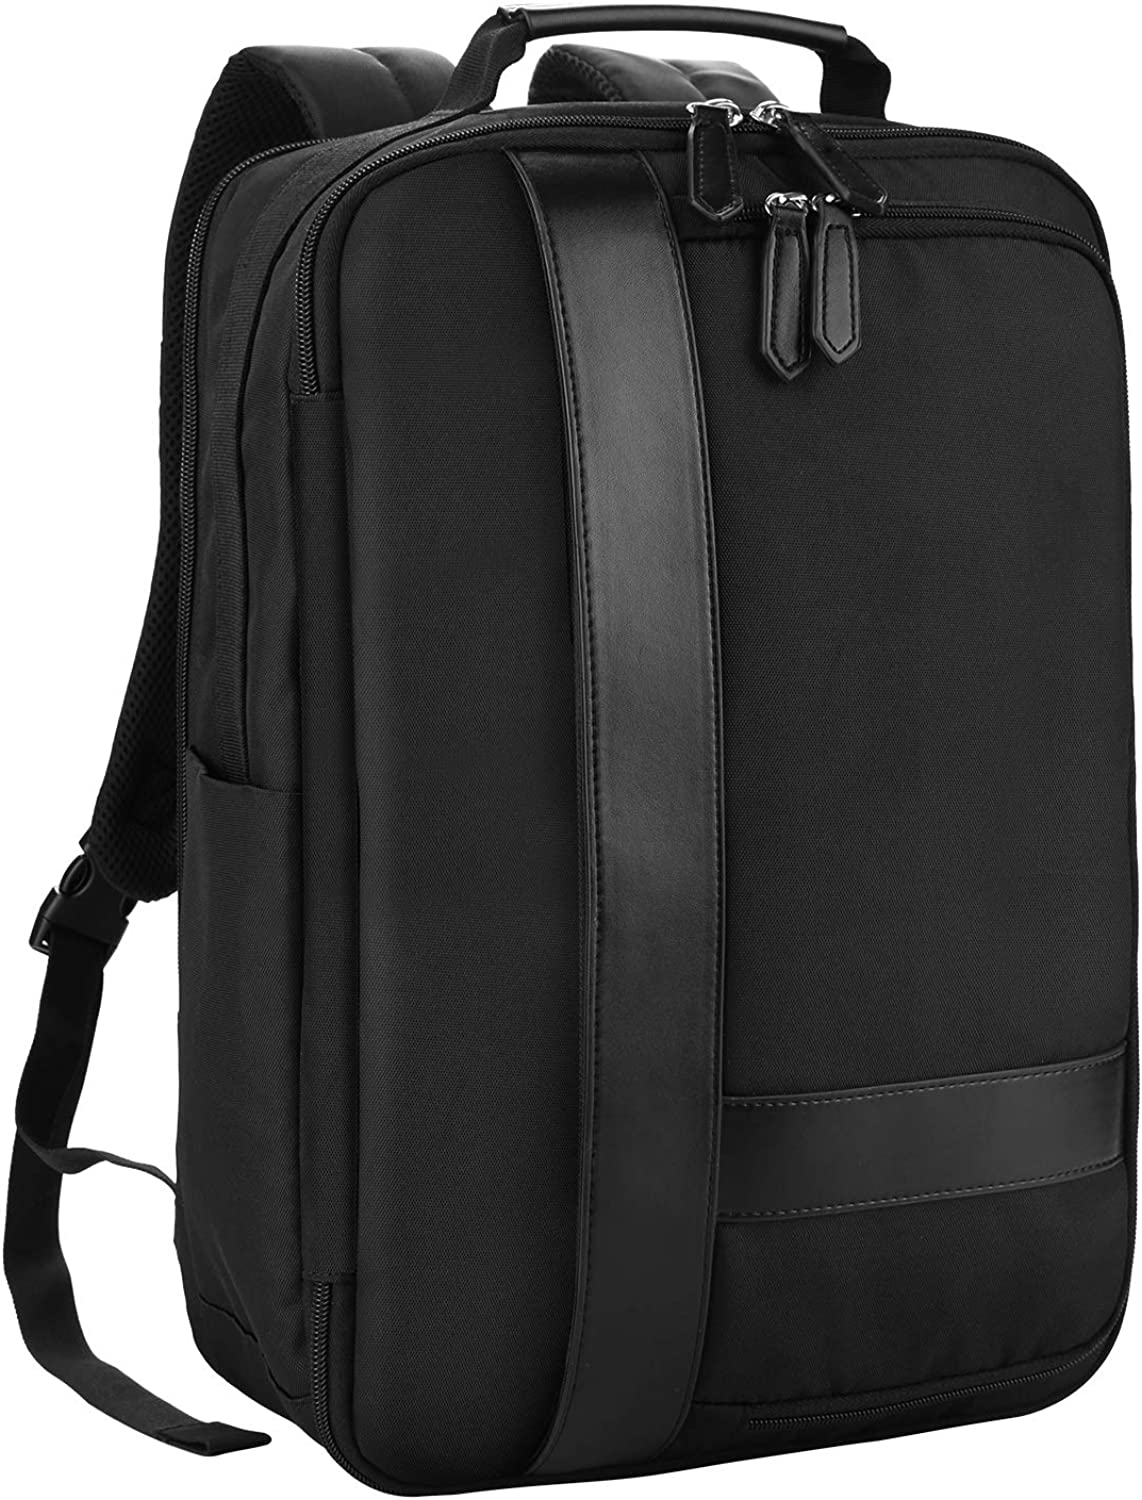 Business Laptop Travel Backpack,Carry-On Travel Luggage Backpacks Flight Approved Weekender Rucksack Bag with Luggage Sleeve for Women Men Fits 17 Laptop